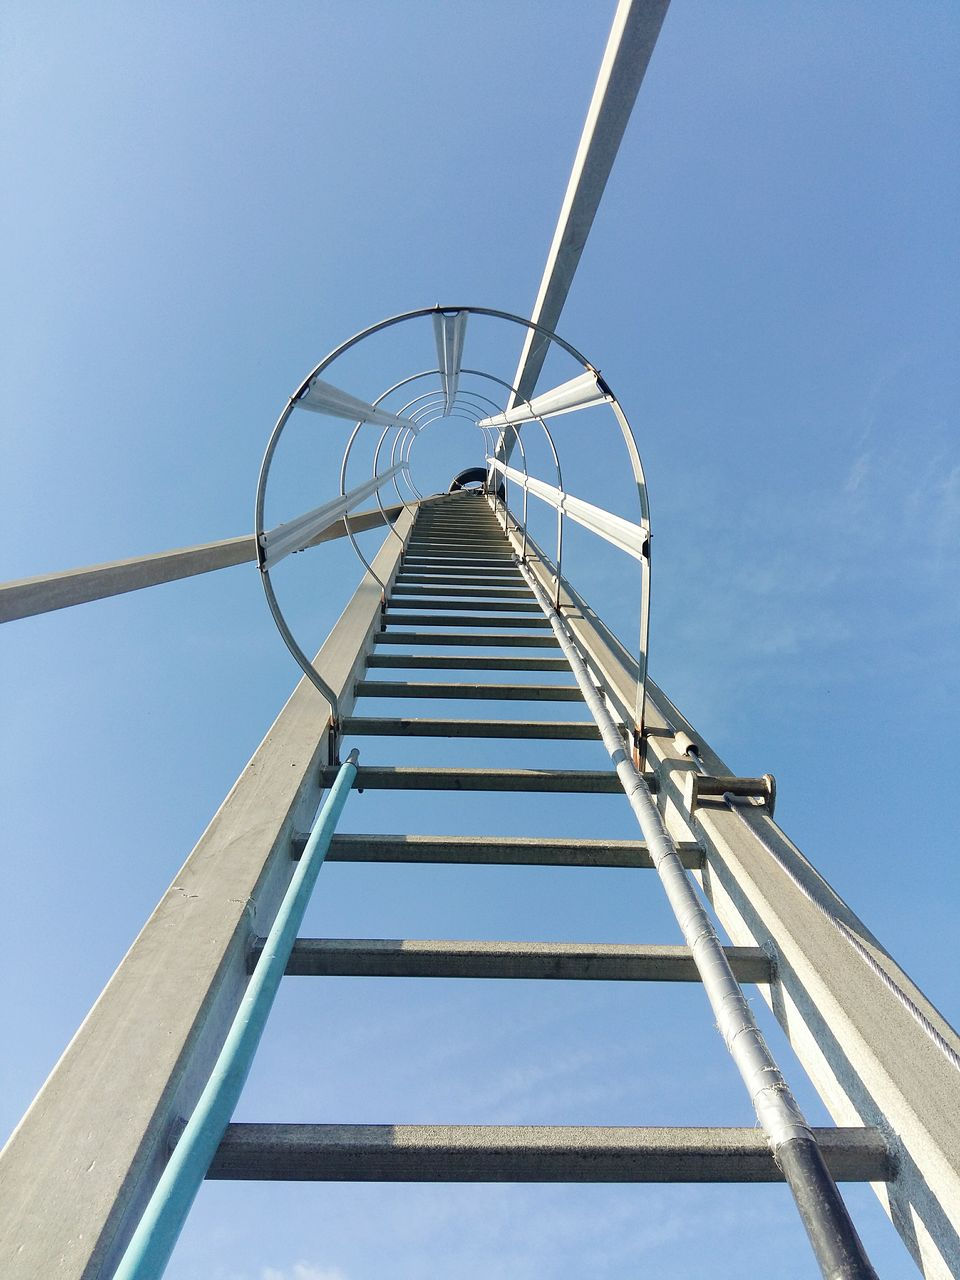 sky, low angle view, environmental conservation, alternative energy, renewable energy, fuel and power generation, wind turbine, wind power, turbine, clear sky, nature, day, architecture, blue, no people, environment, built structure, ladder, sunlight, metal, outdoors, directly below